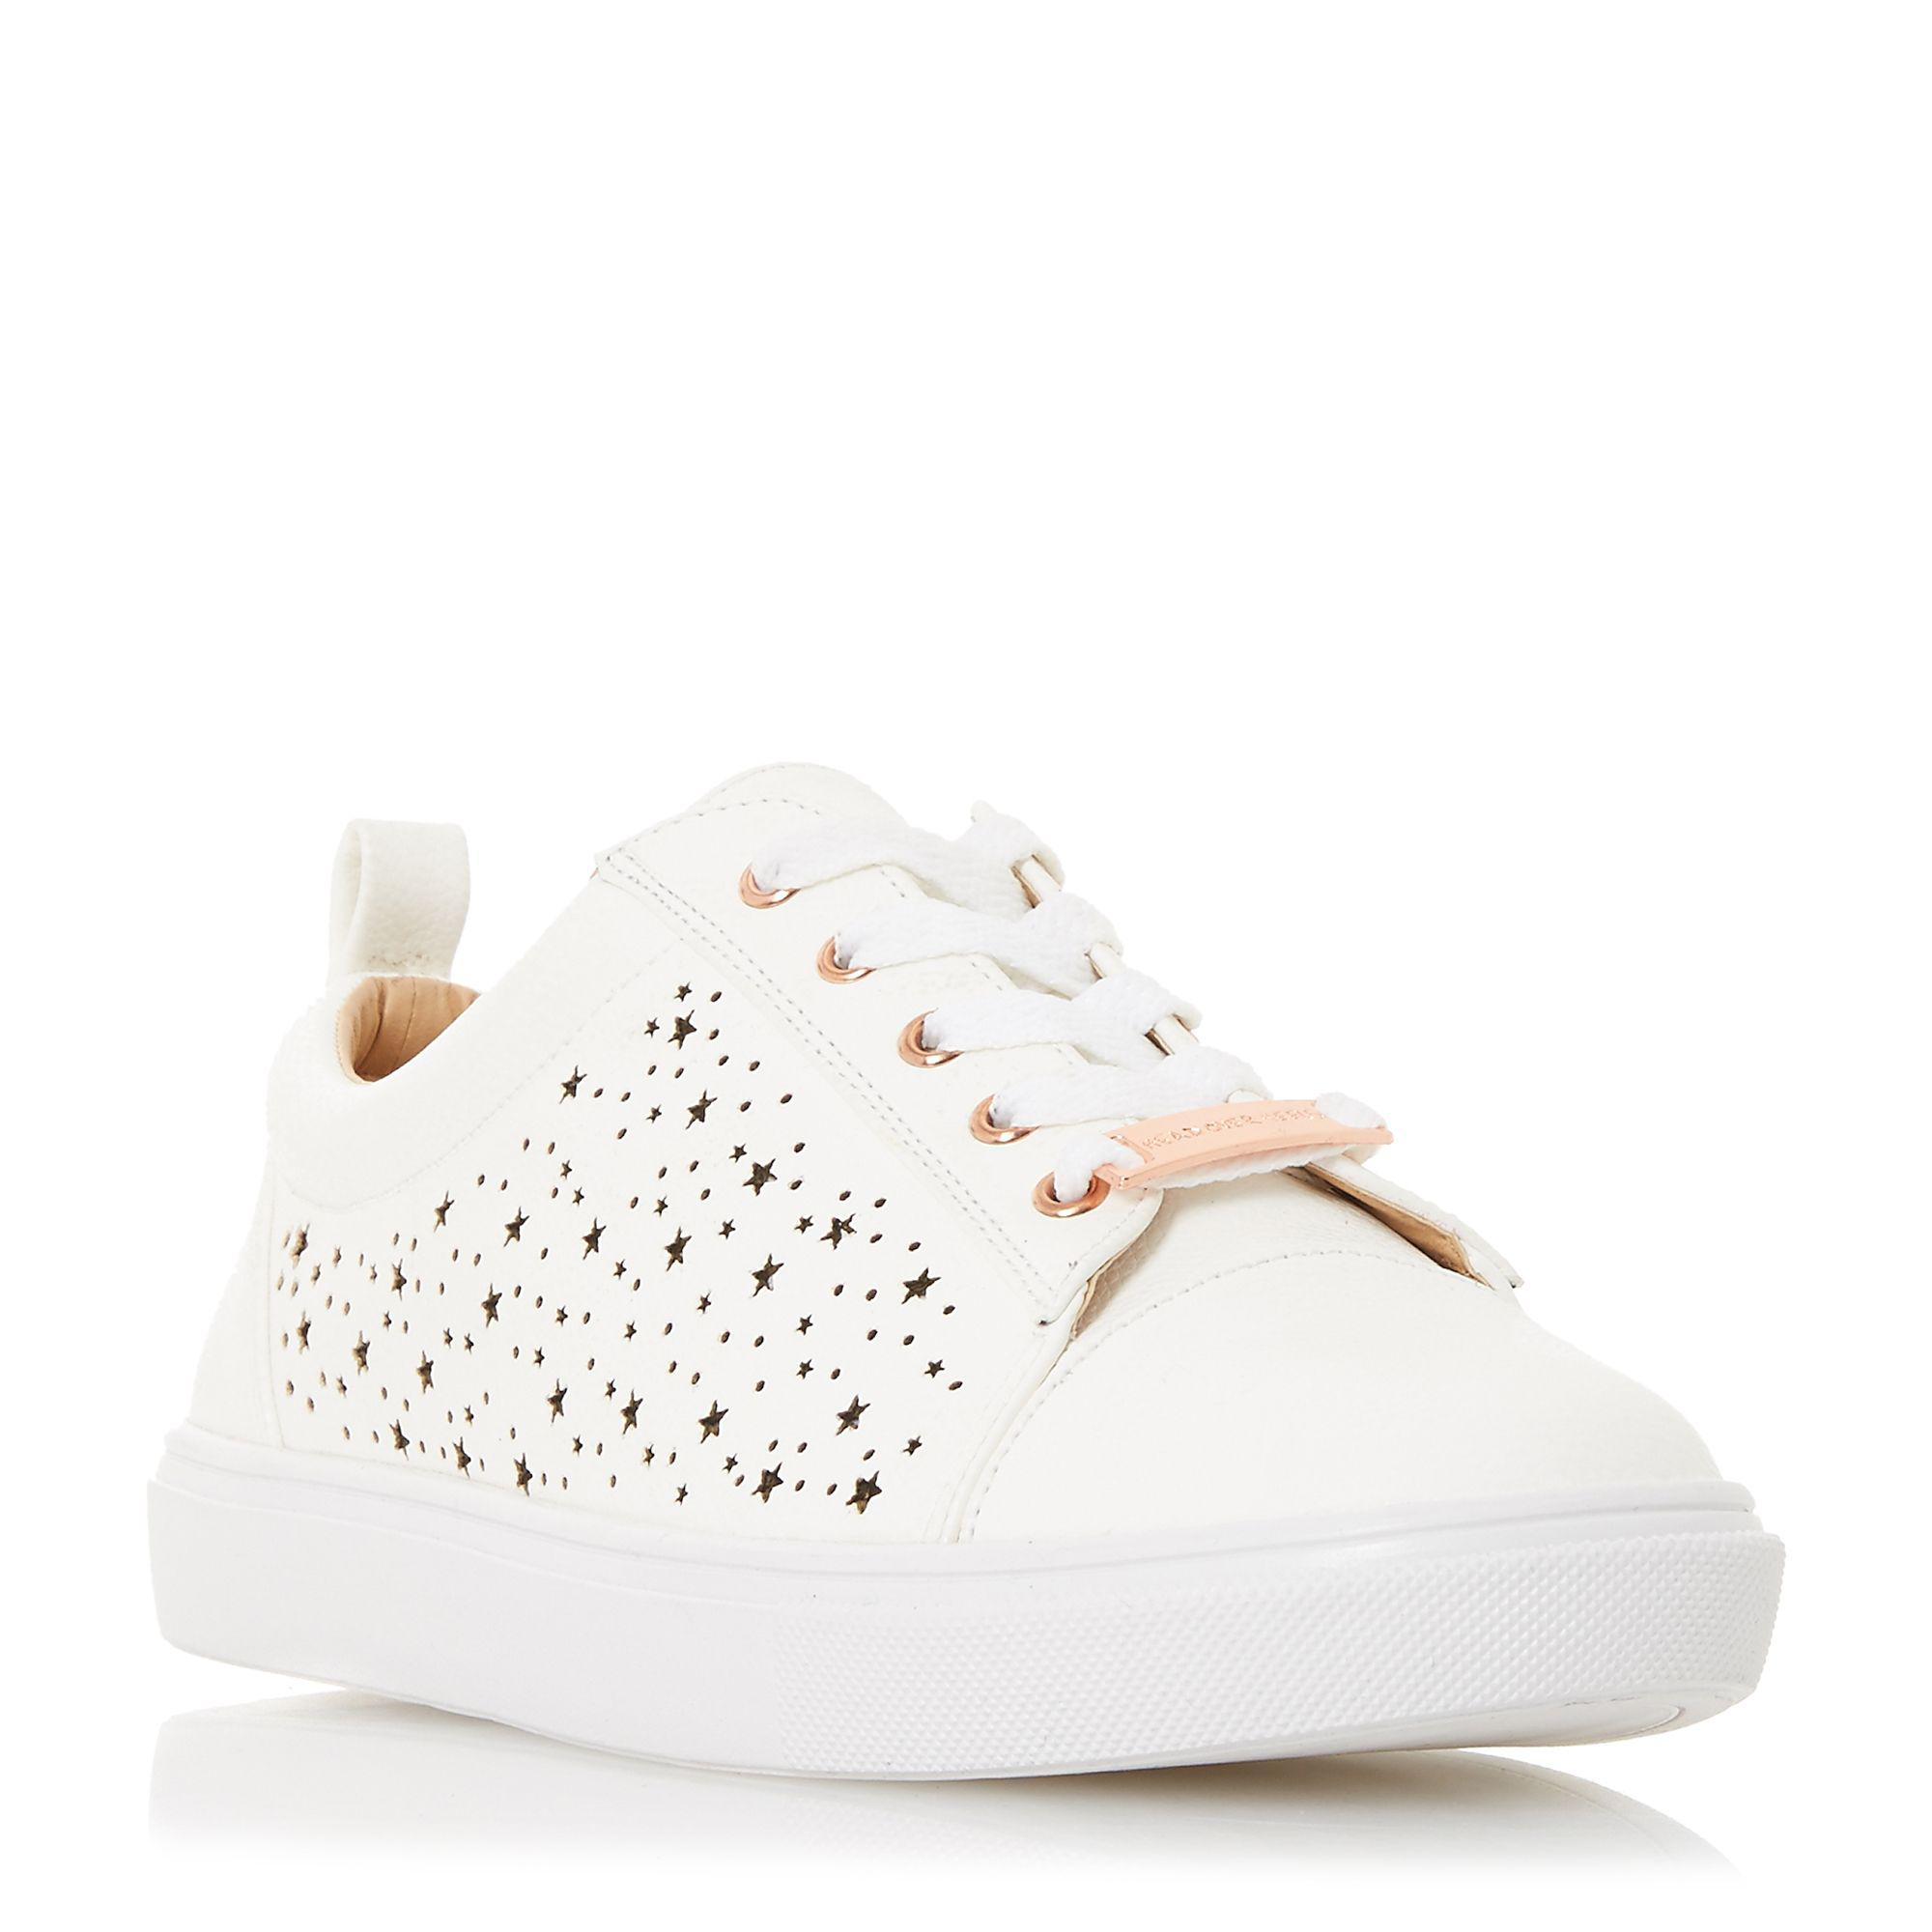 Dune London Elektraa White Casual Sneakers clearance fashion Style for sale buy authentic online clearance outlet store wc4xuEV8o8